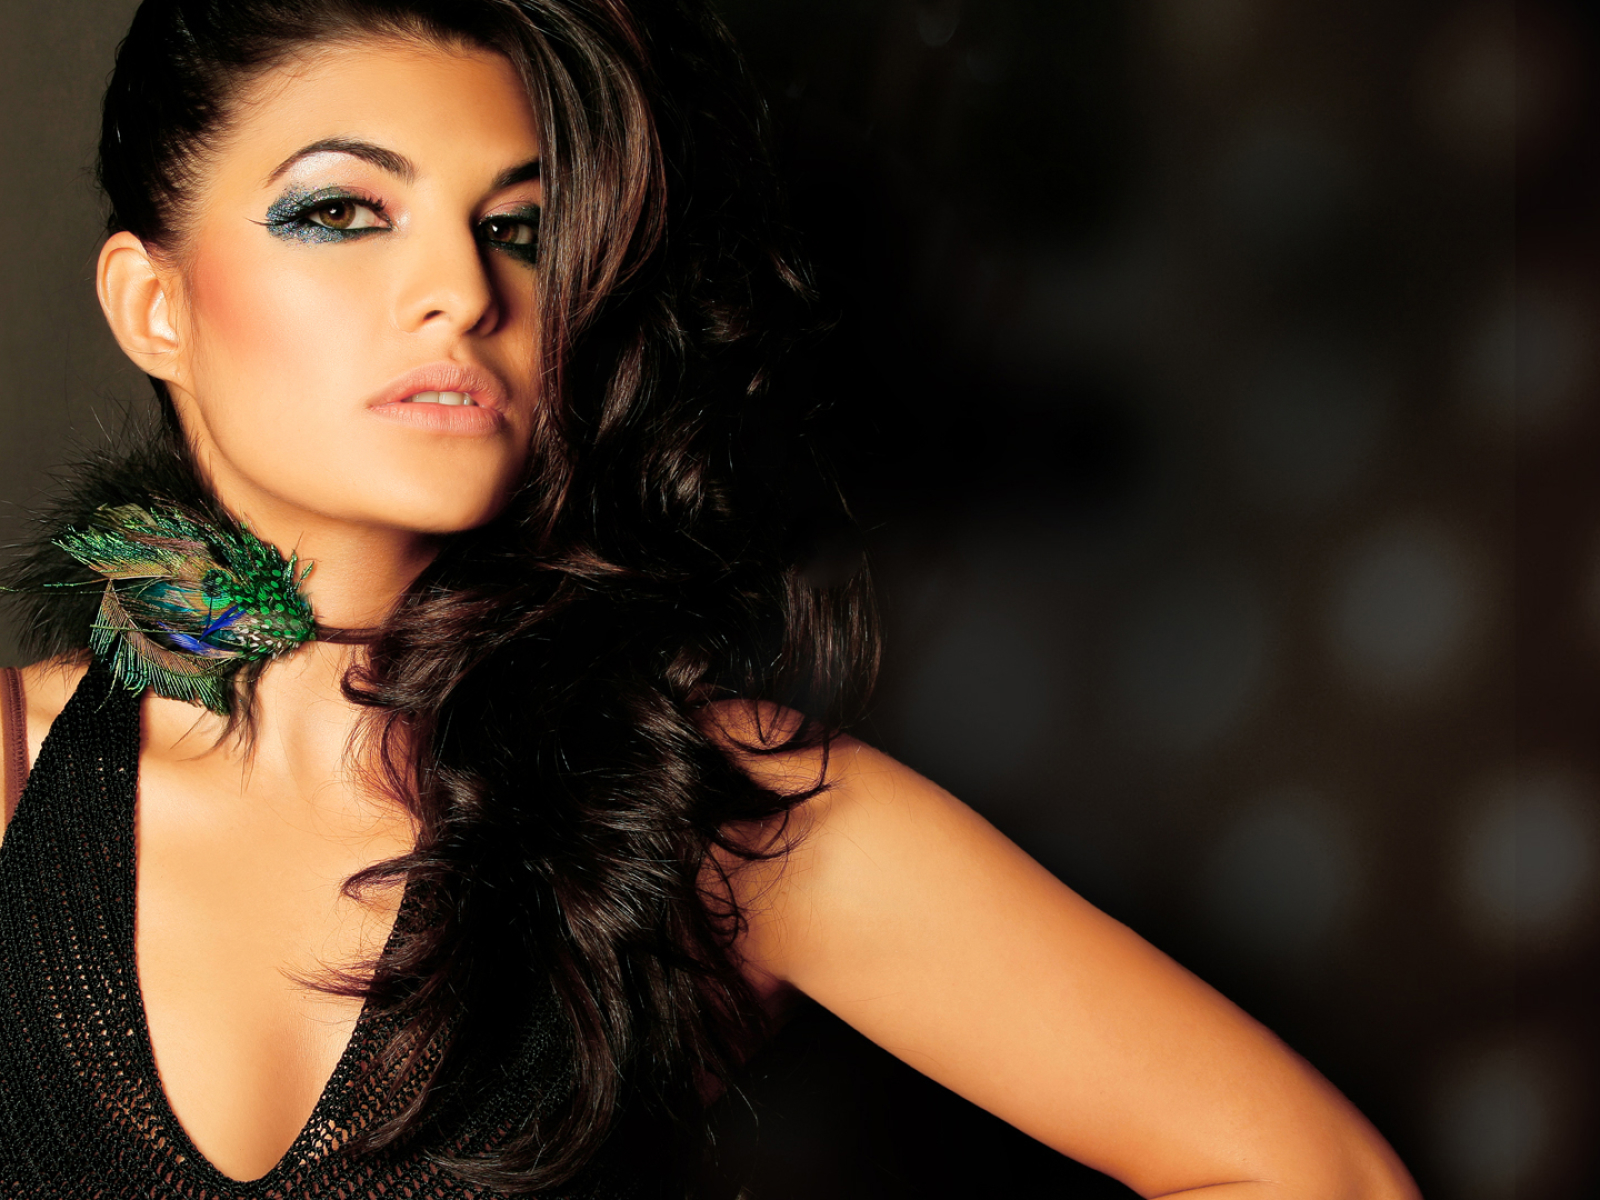 Free Download Full Hd Wallpaper Jacqueline Fernandez: Jacqueline Fernandez In Sexy Black Stills, Full HD Wallpaper